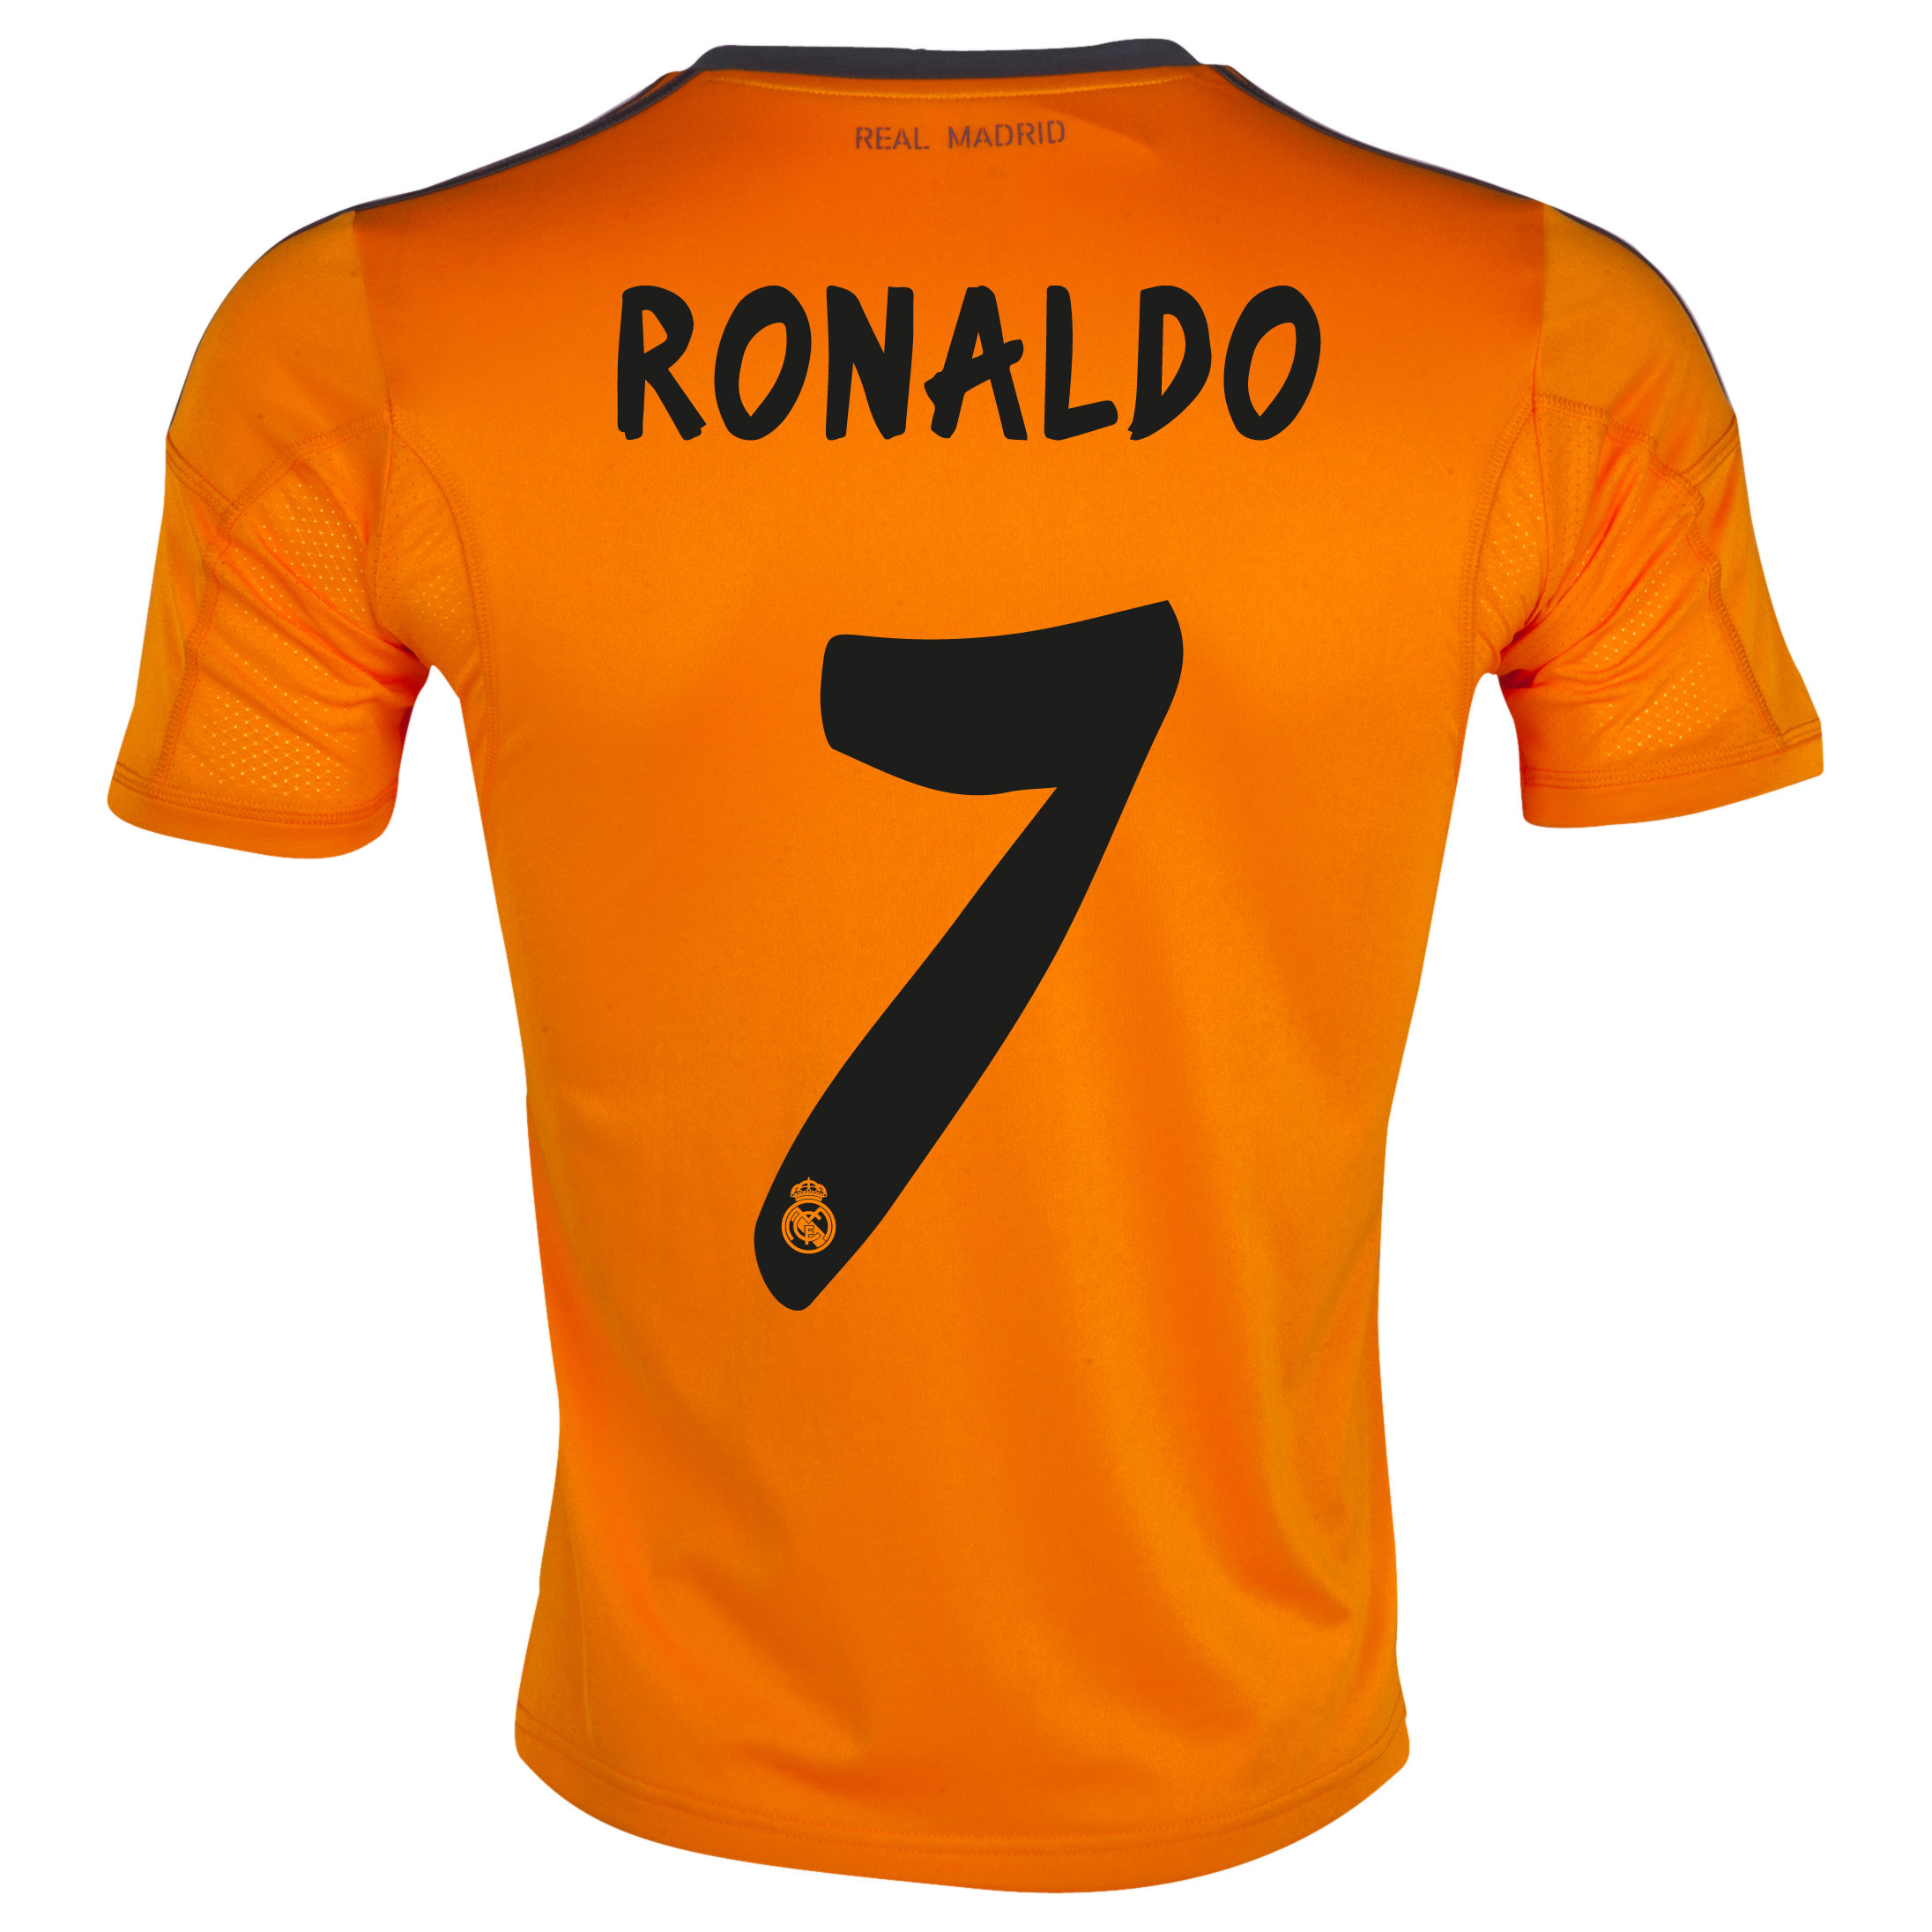 Real Madrid Third Shirt 2013/14 with Ronaldo 7 printing